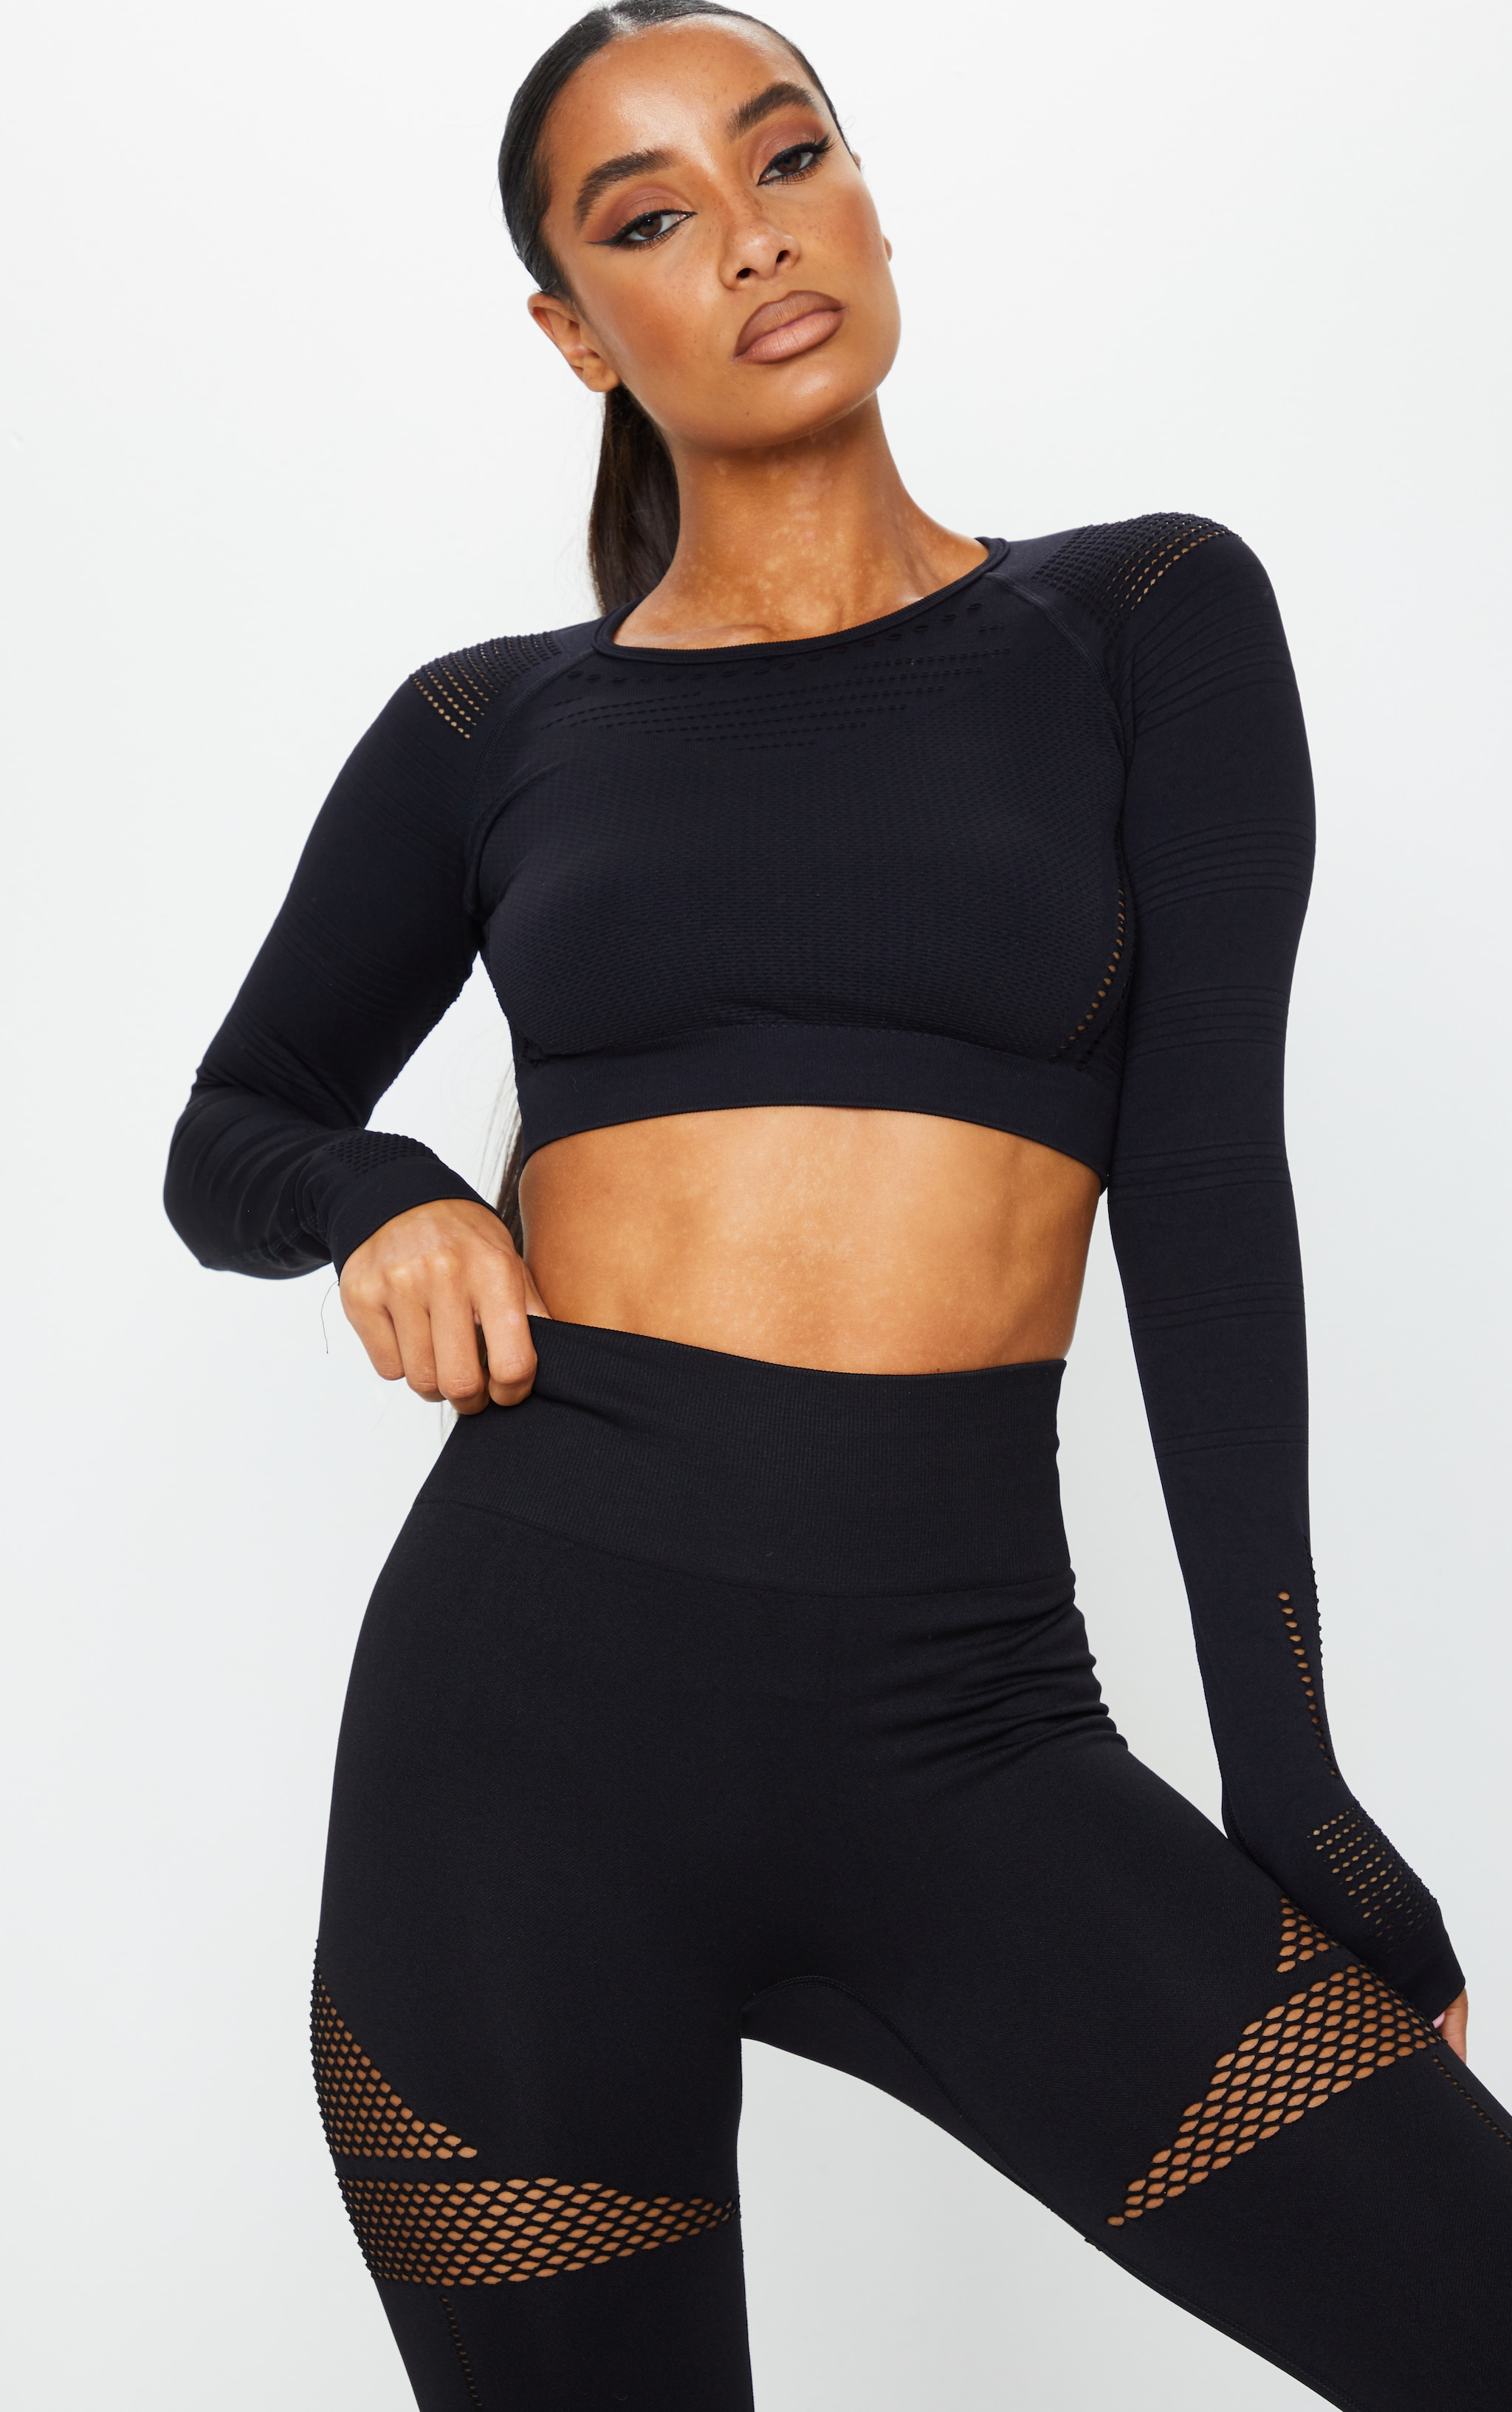 PRETTYLITTLETHING Black Long Sleeve Cut Out Seamless Top 1